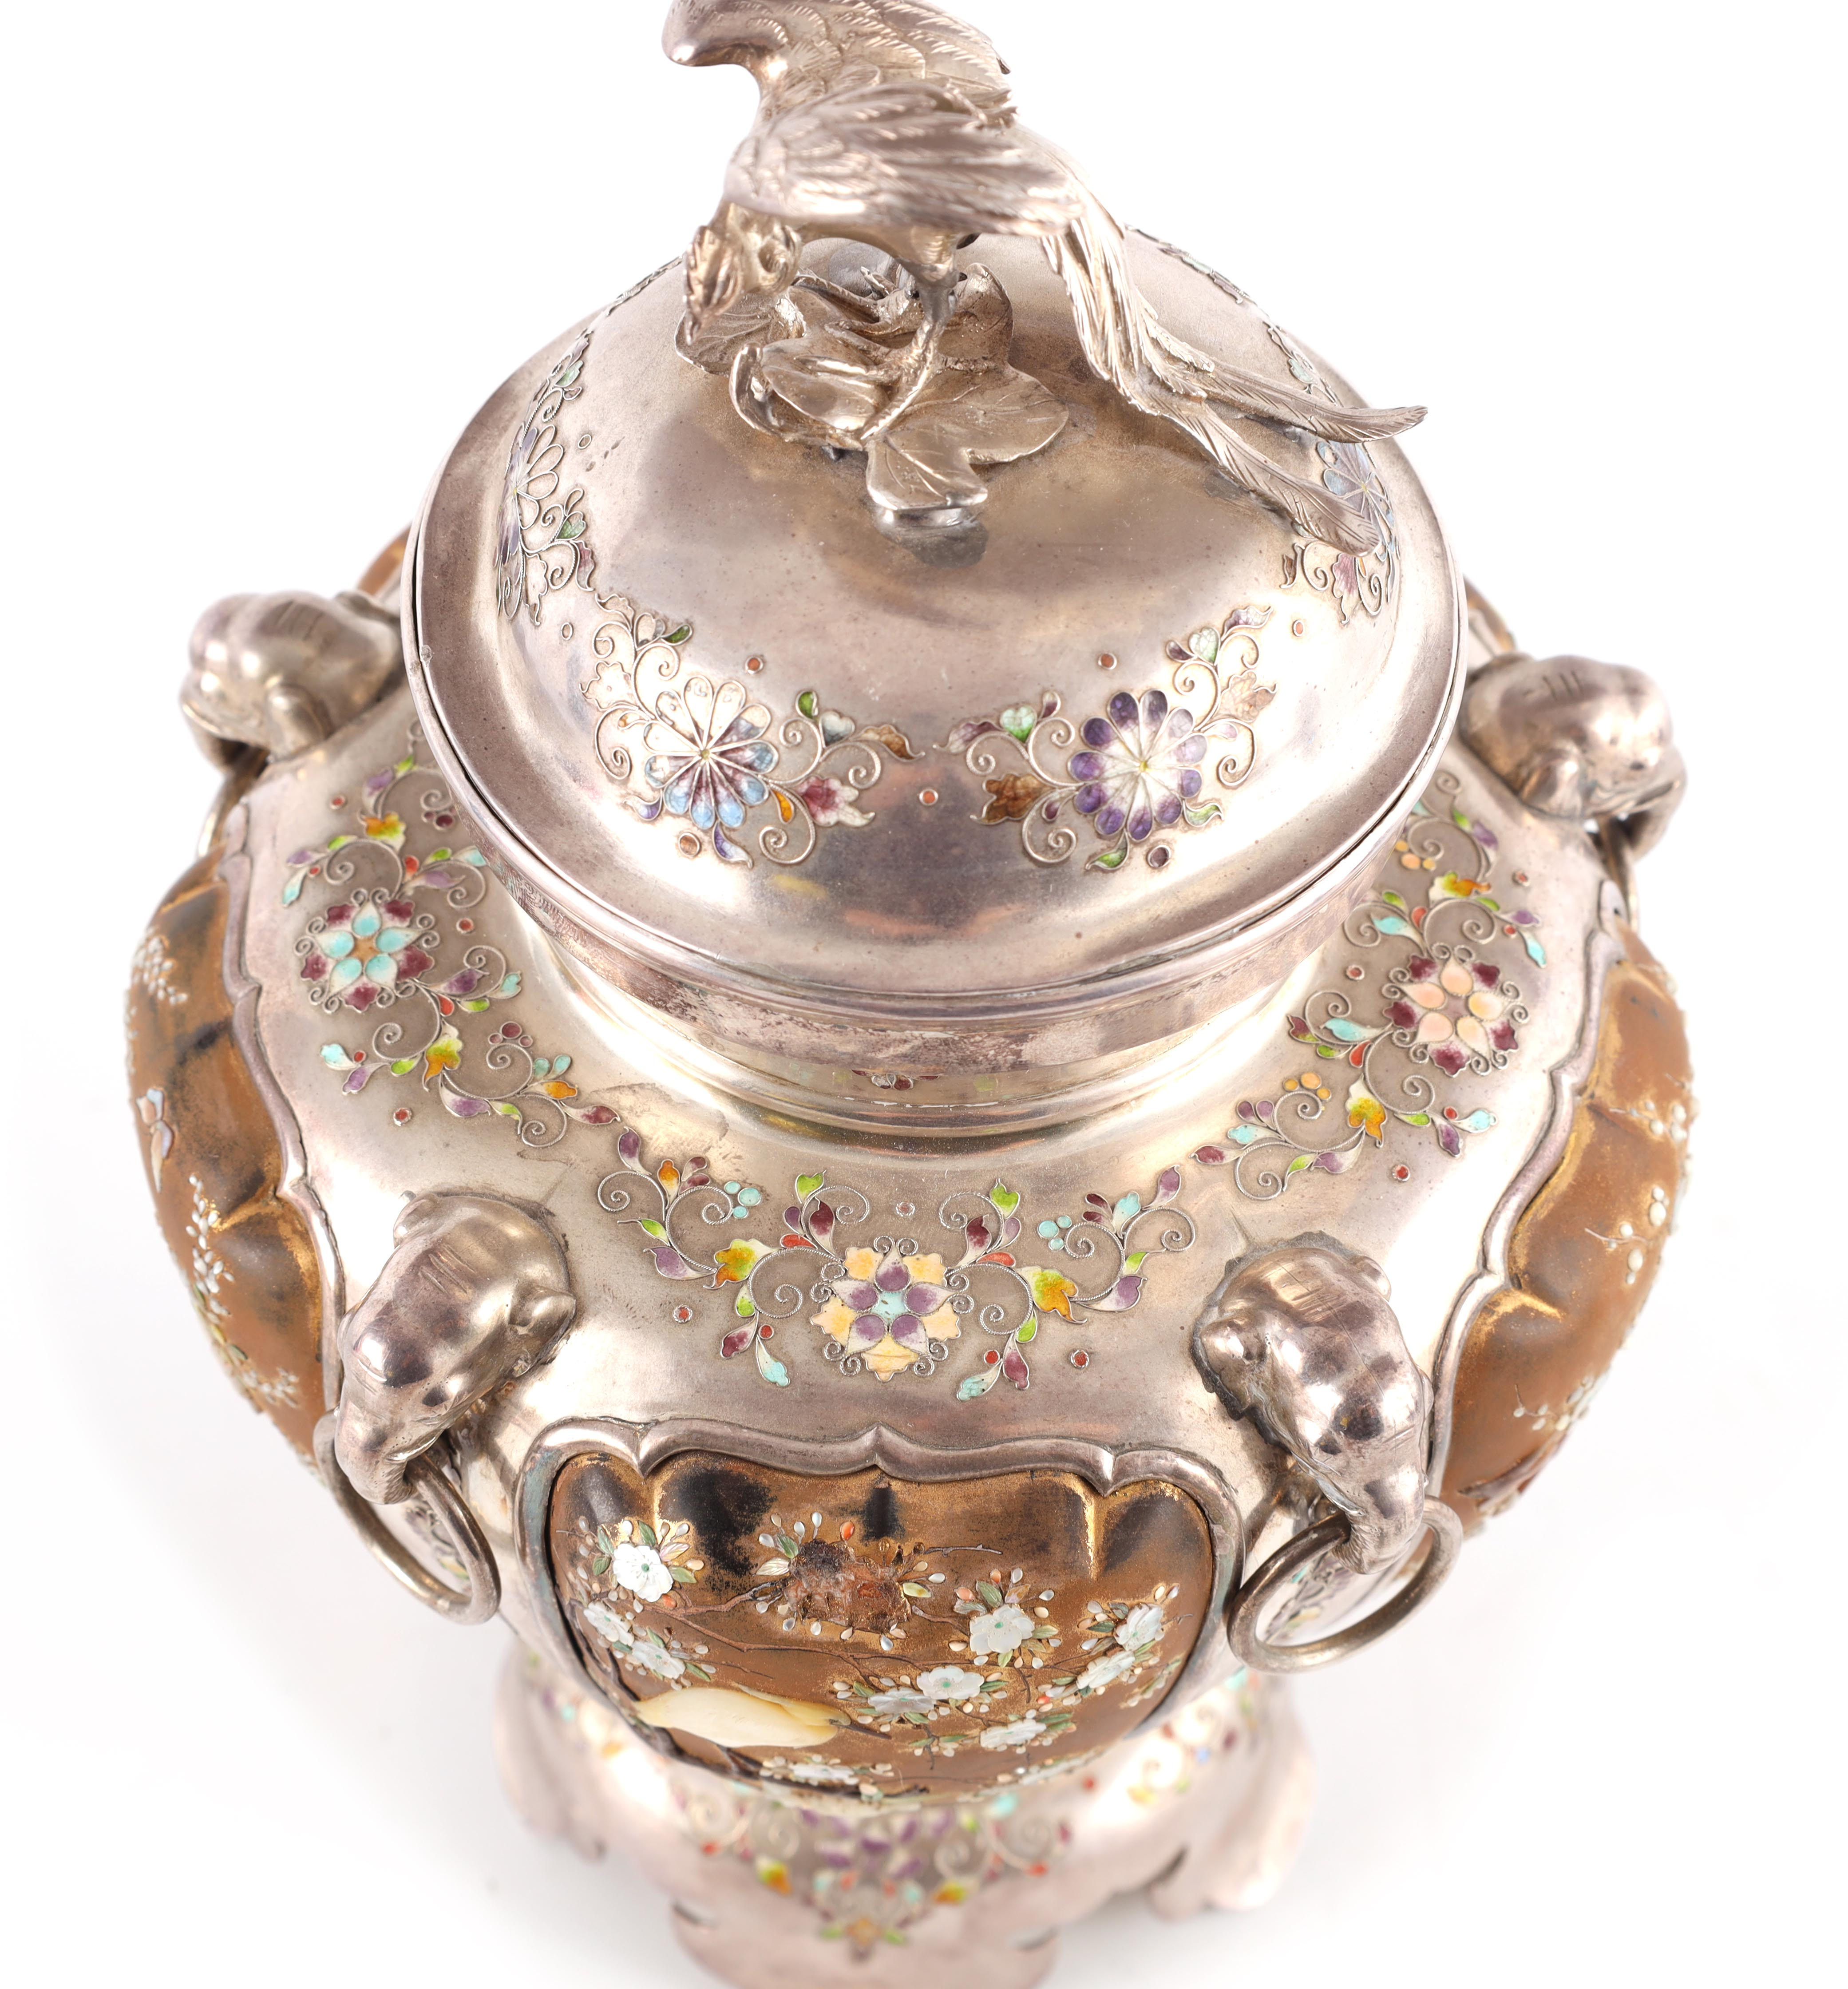 A JAPANESE MEIJI PERIOD SILVER & GOLD LACQUER SHIBAYAMA KORO covered in multicoloured enamels, the - Image 5 of 10